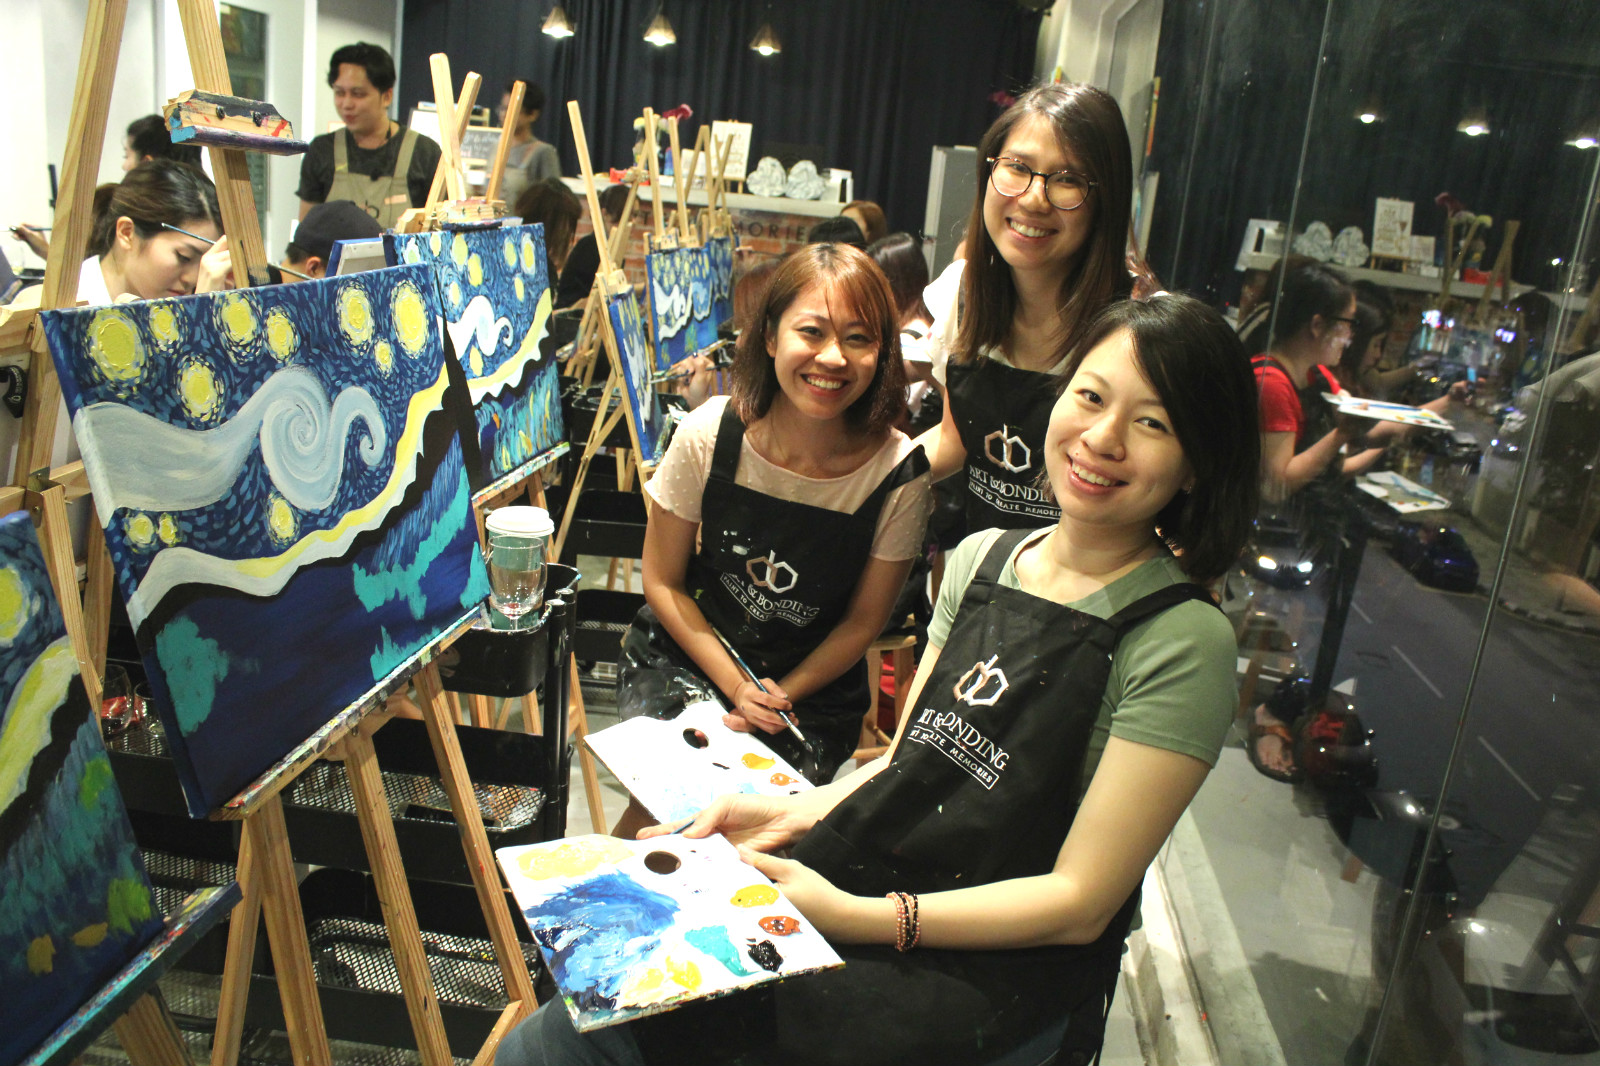 sip-and-paint-night-nightlife-outing-party-kl-malaysia